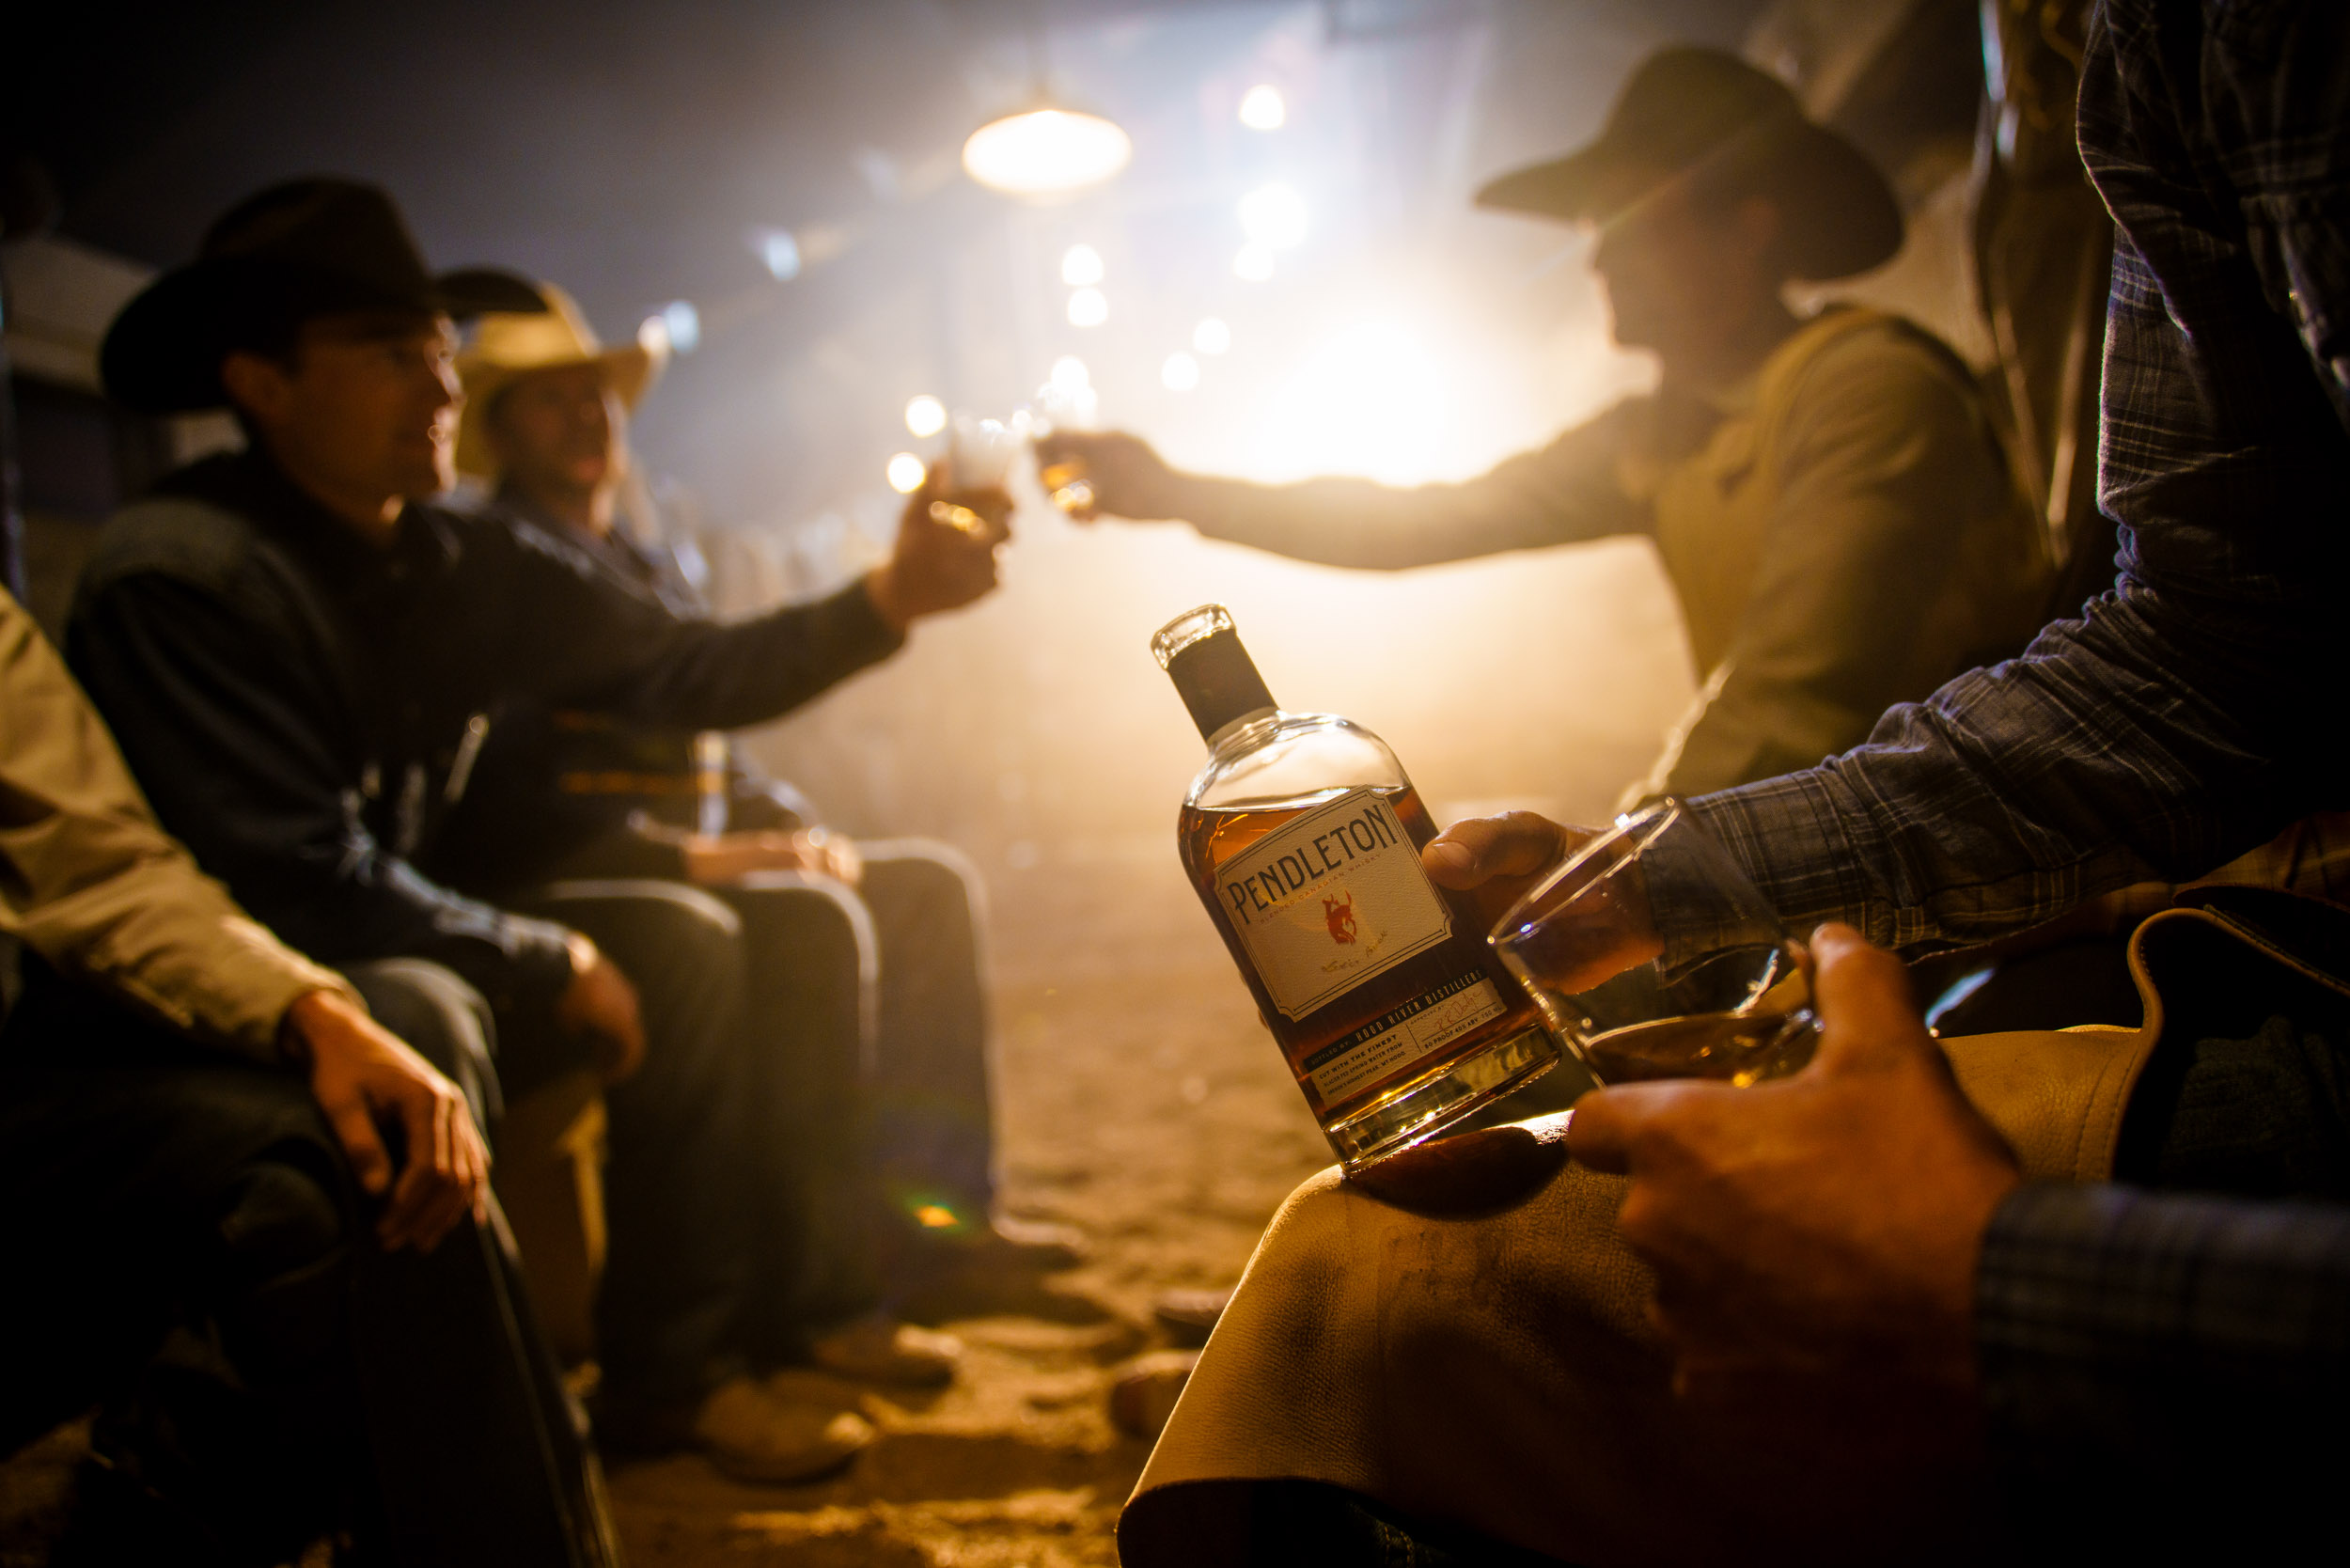 Pendleton Round Up cowboys enjoying a post-rodeo celebration whiskey drink.